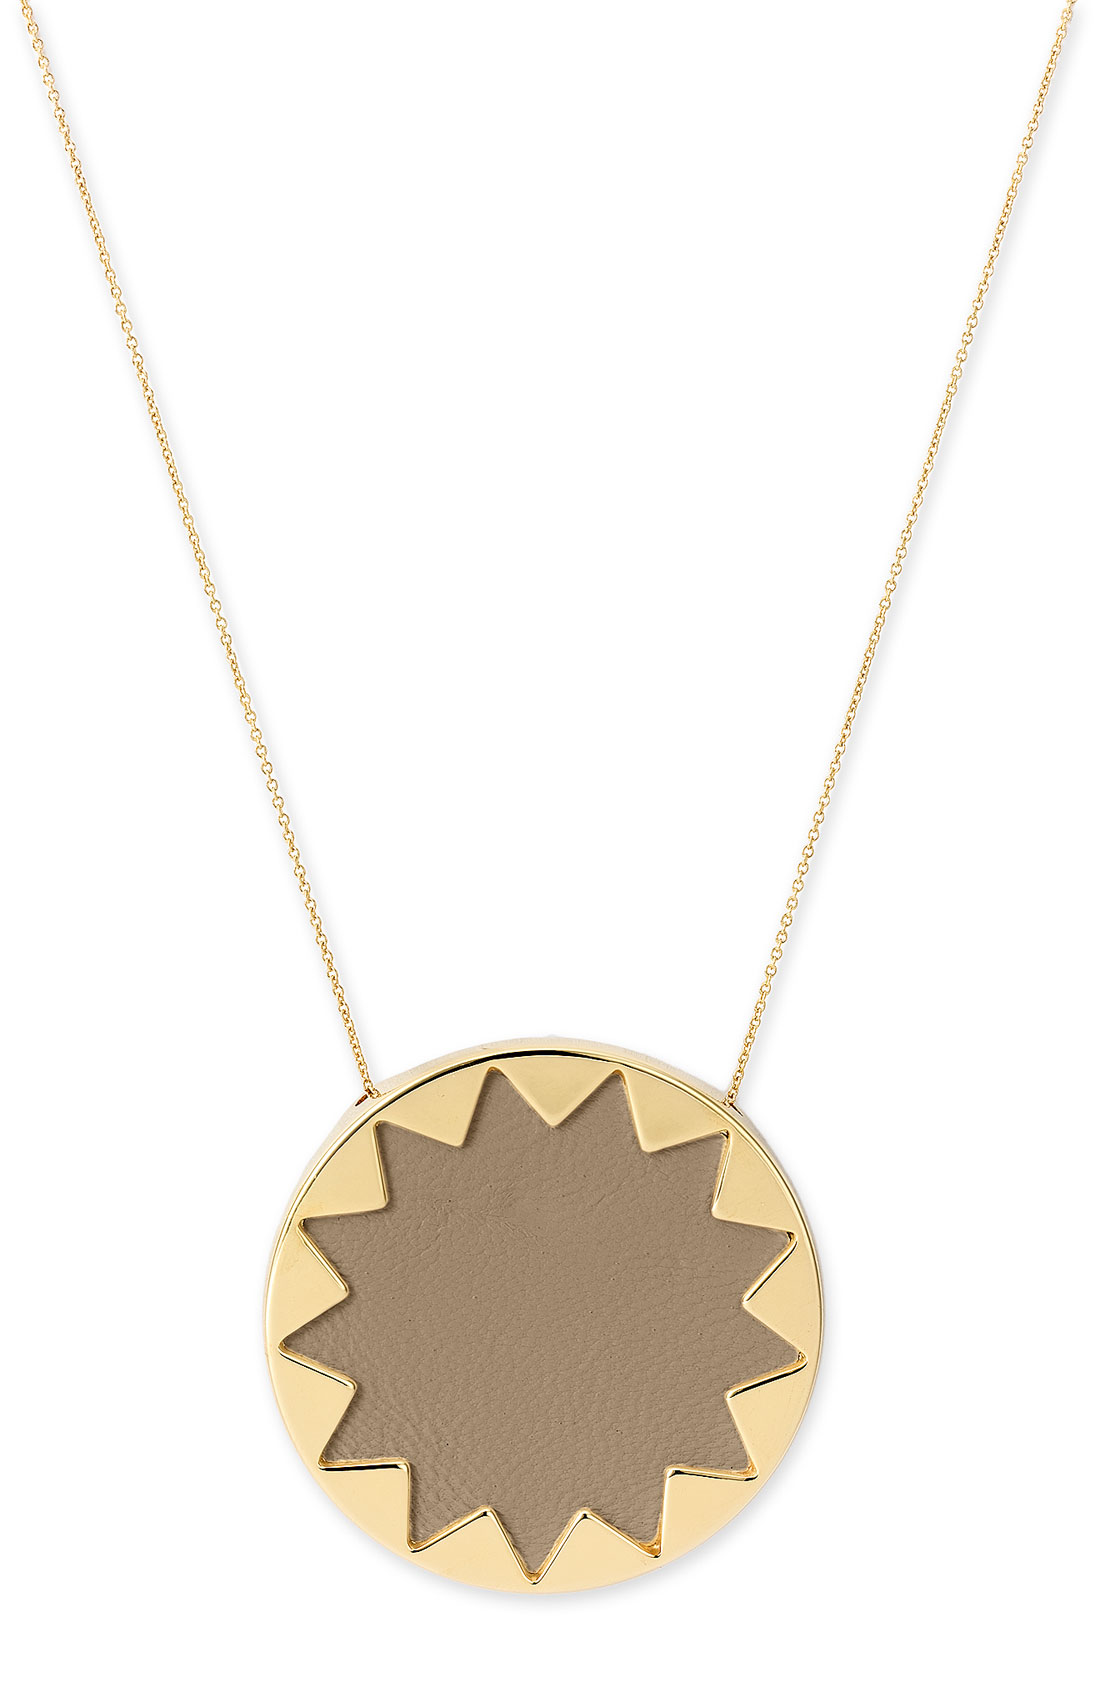 house of harlow 1960 sunburst pendant necklace in gold